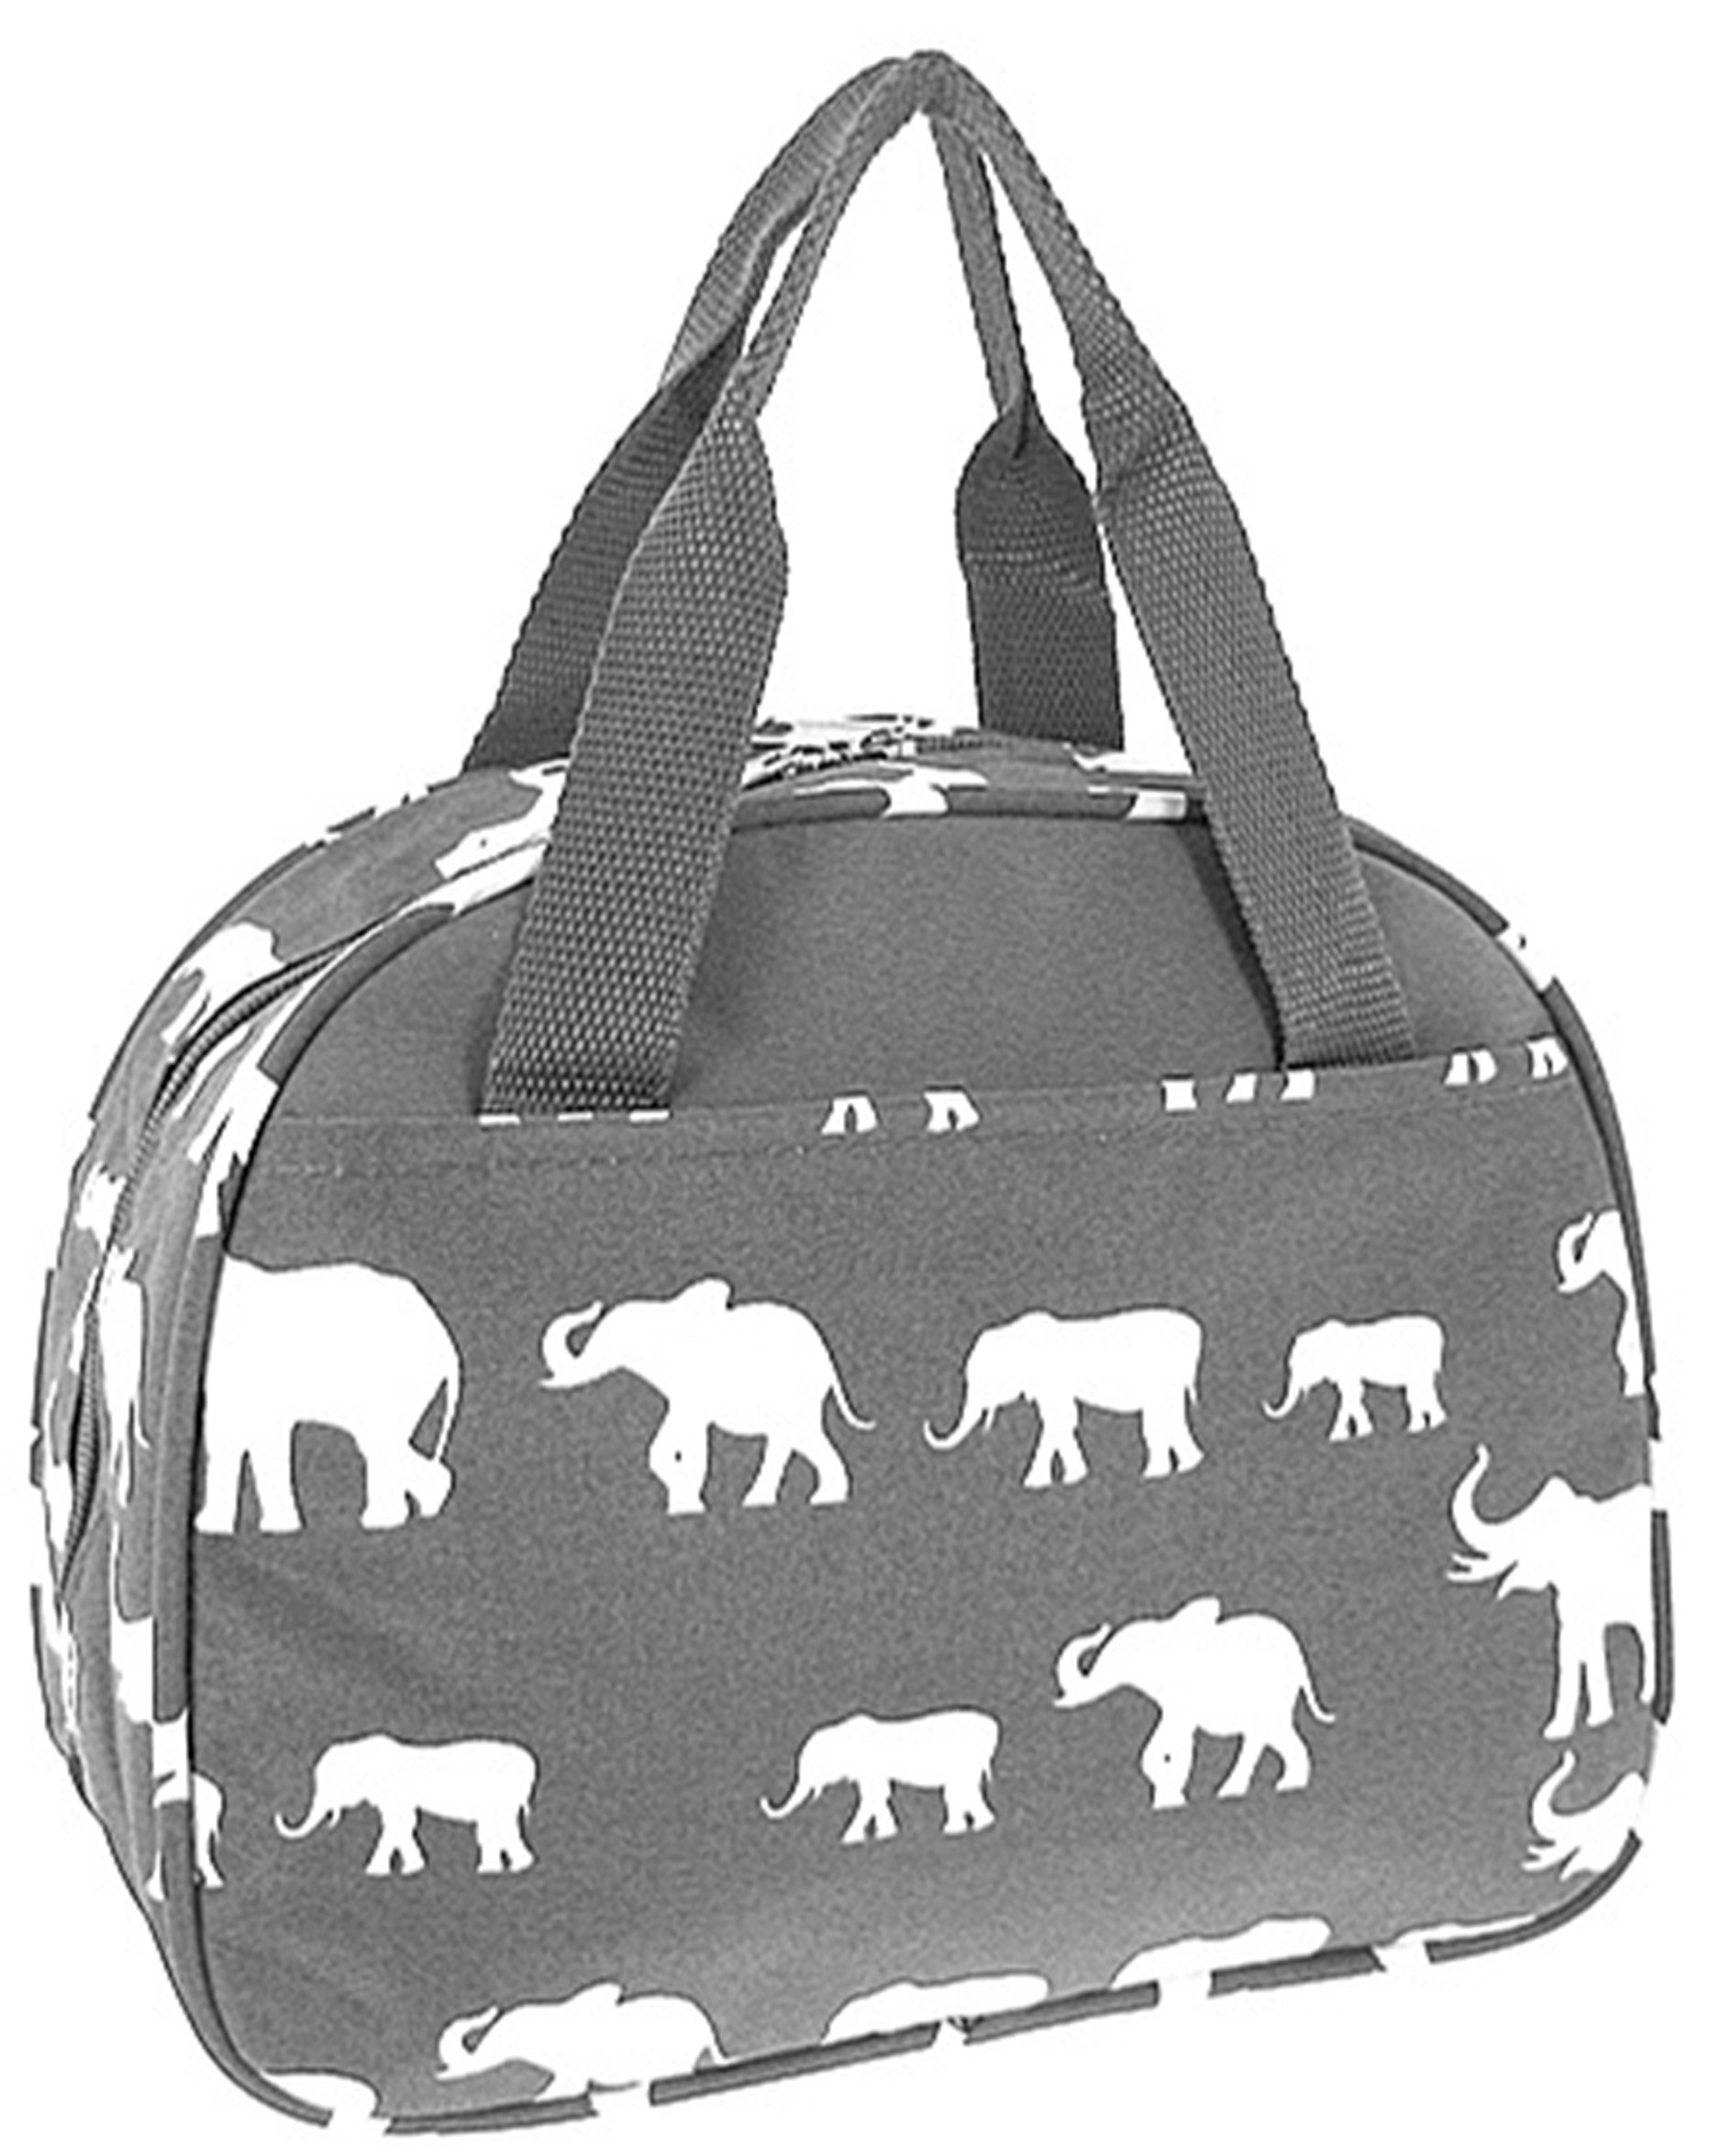 Elephant Print Insulated Lunch Bag Tote (Grey)